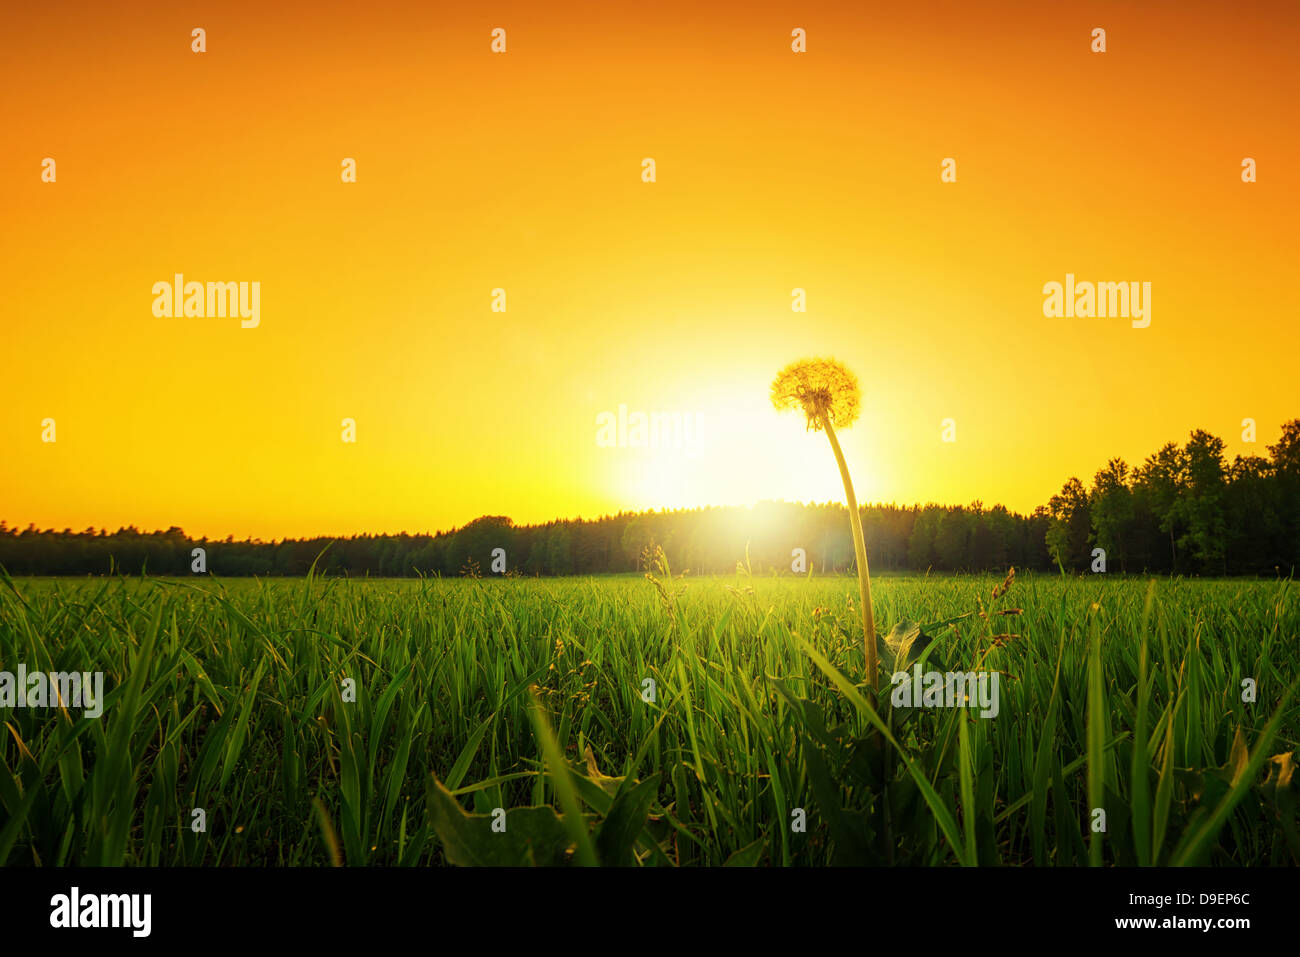 Lonely dandelion on a grass field at sunset, low angle - Stock Image